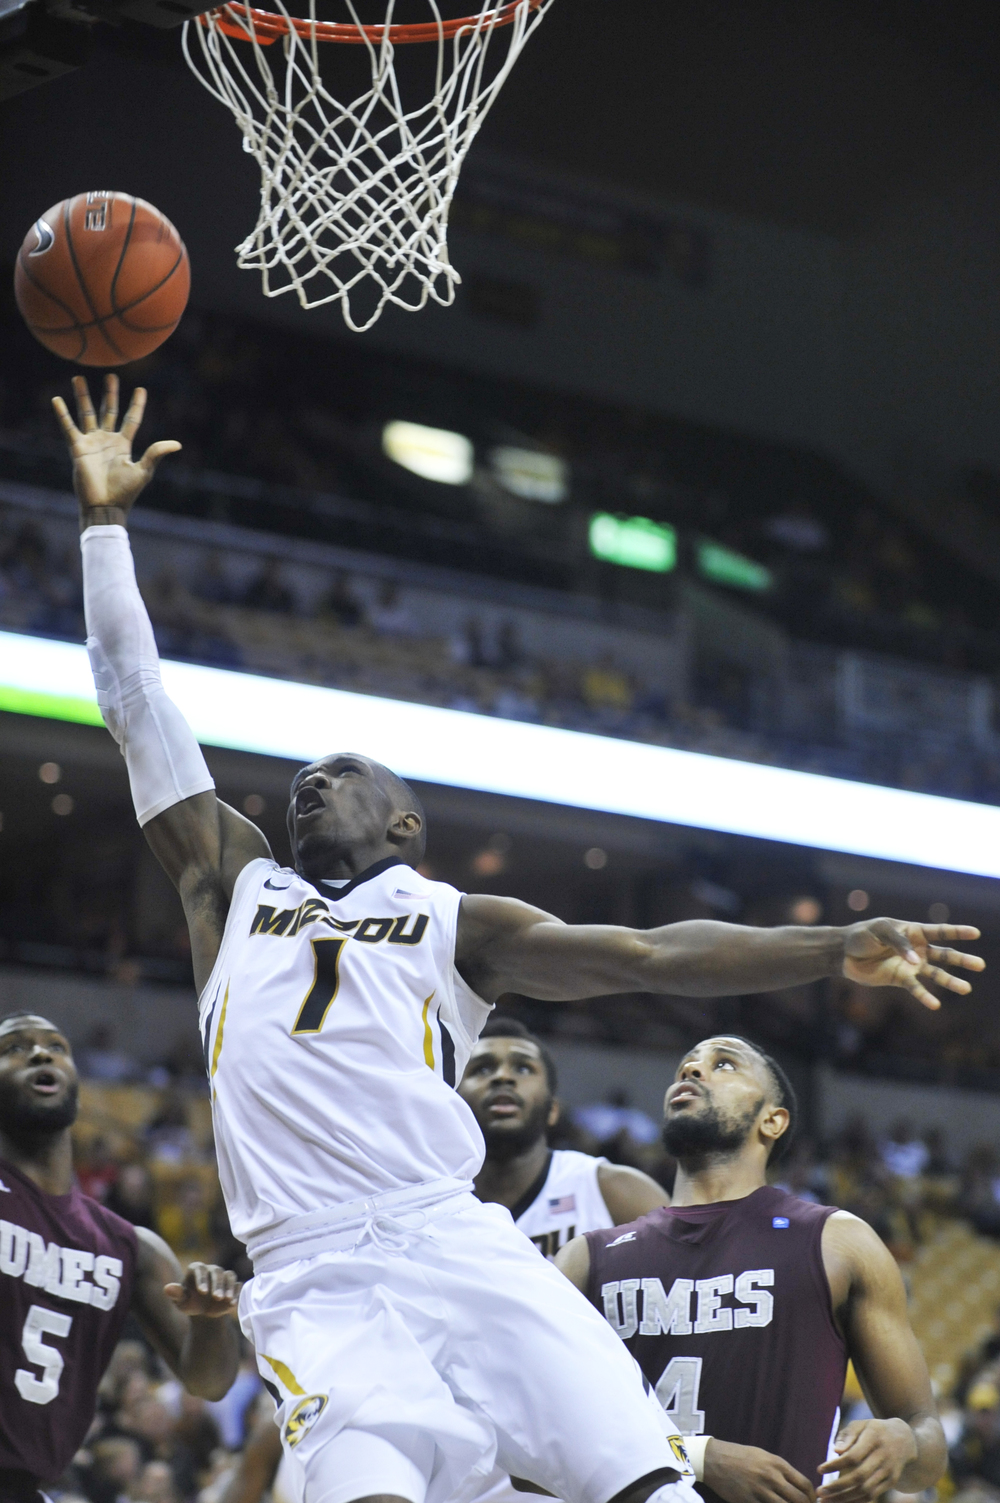 Missouri's Terrence Phillips shoots the ball as Maryland-Eastern Shore's Stephen Spurlock and Devin Martin watch on Sunday, November 15, 2015 at Mizzou Arena. Missouri won 73-55.